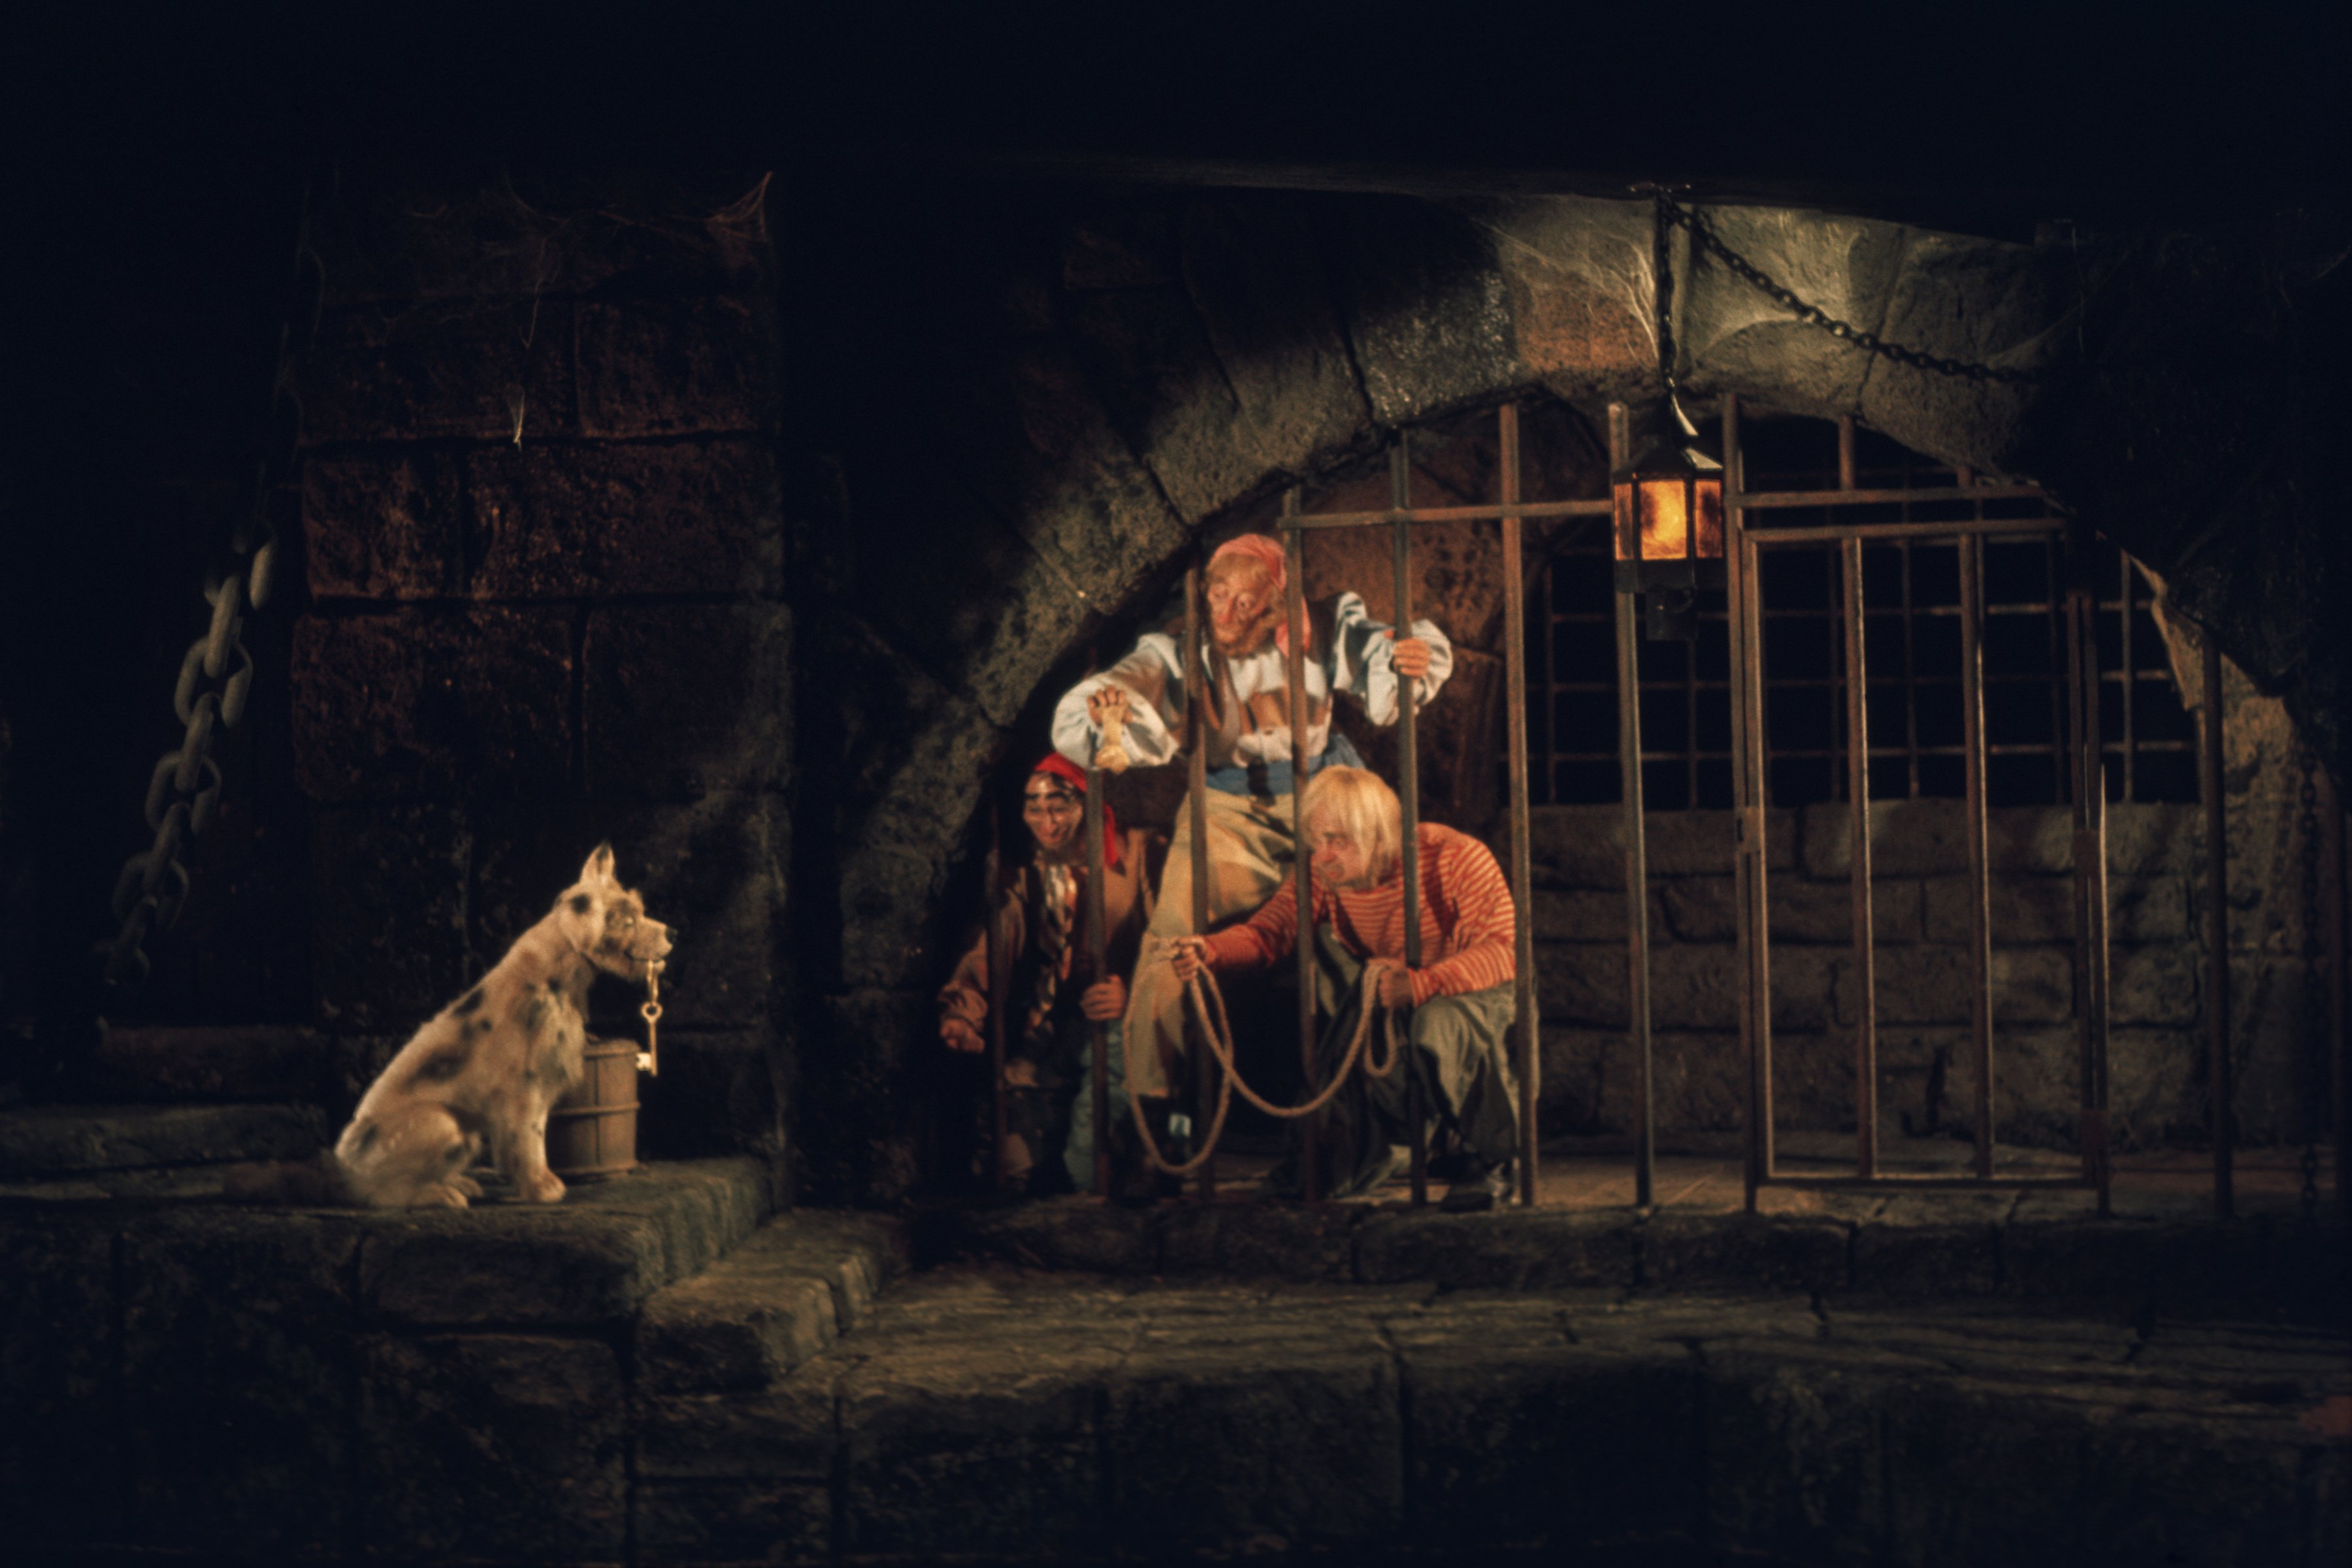 Pirates of the Caribbean Attraction